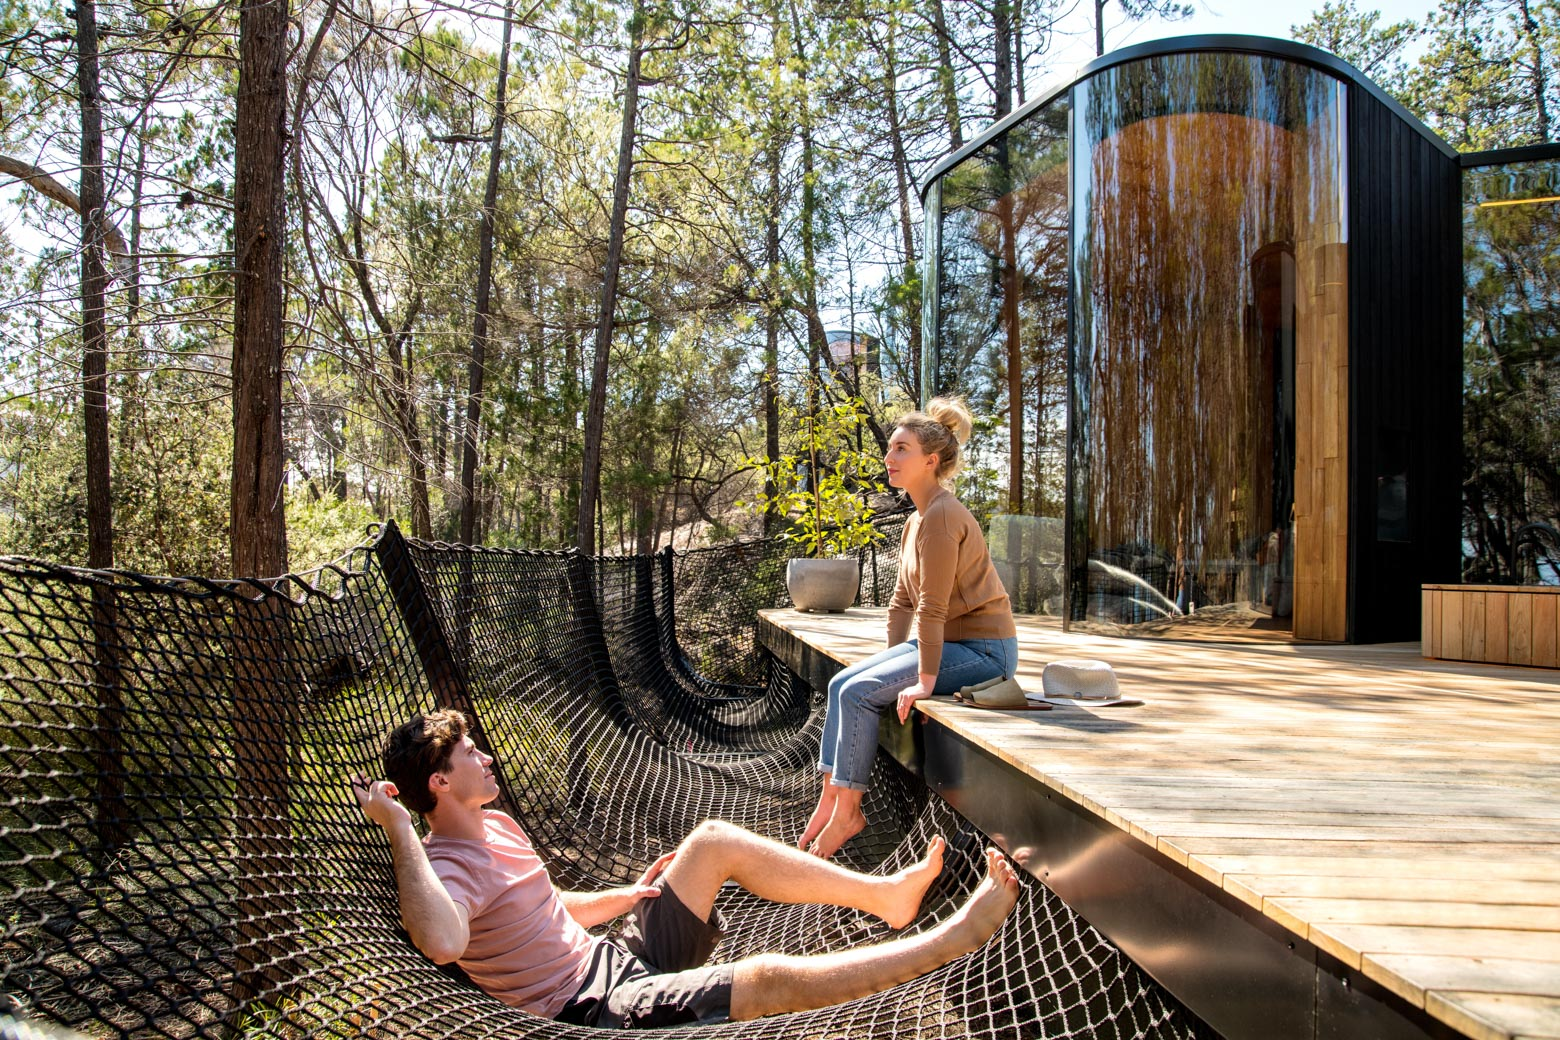 Stay at the Freycinet Lodge - Coastal Pavilion on your Lap of Tasmania road trip